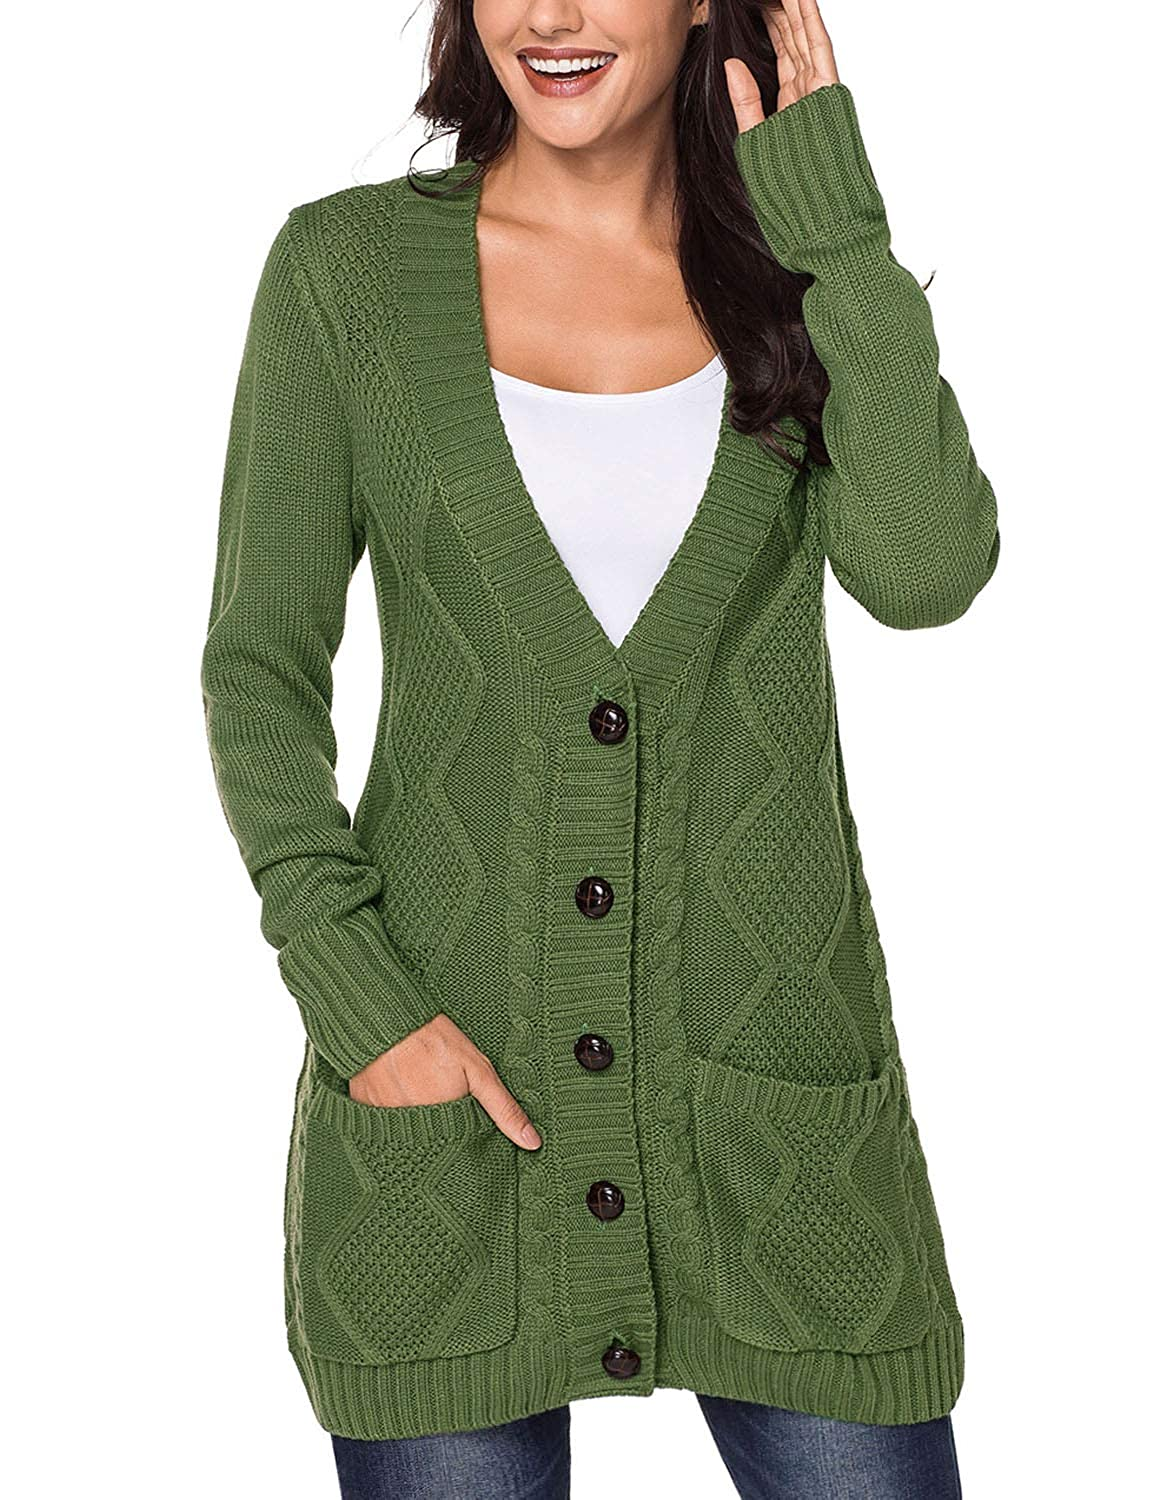 ca9cc9b078 luvamia Womens Long Sleeve Open Front Buttons Cable Knit Pocket Sweater  Cardigan